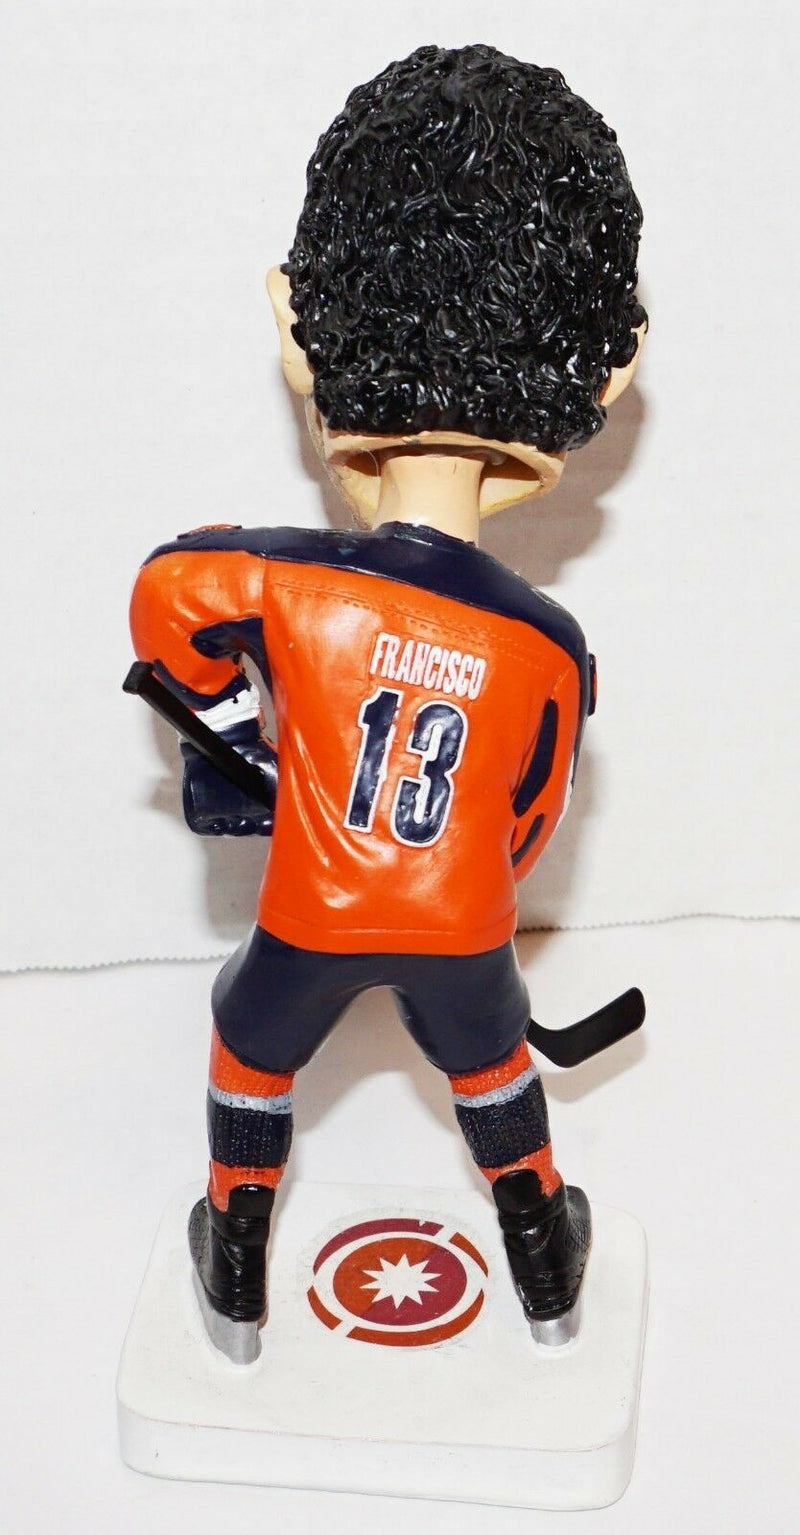 "JON FRANCISCO 6.5"" FIGURE ONTARIO REIGN HOCKEY BOBBLEHEAD FIGURINE USED - NO BOX - EZ Monster Deals"